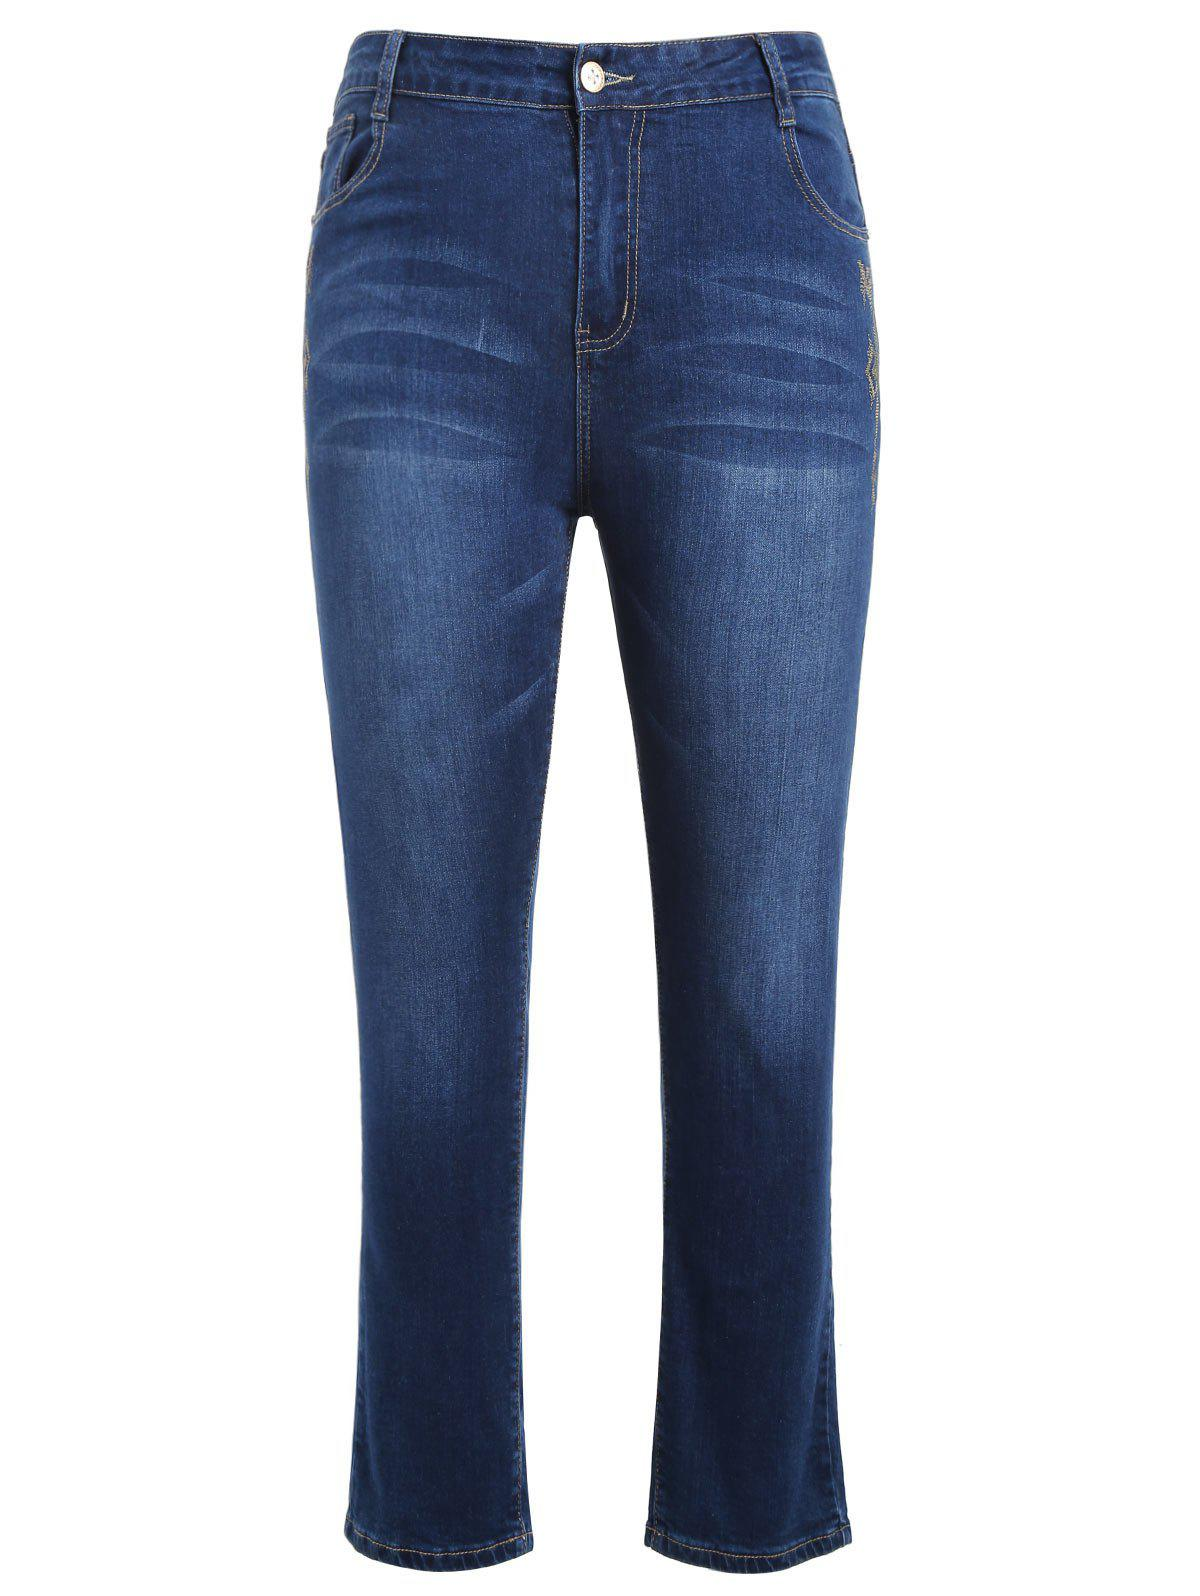 Hot Plus Size Zipper Fly Jeans with Embroidered